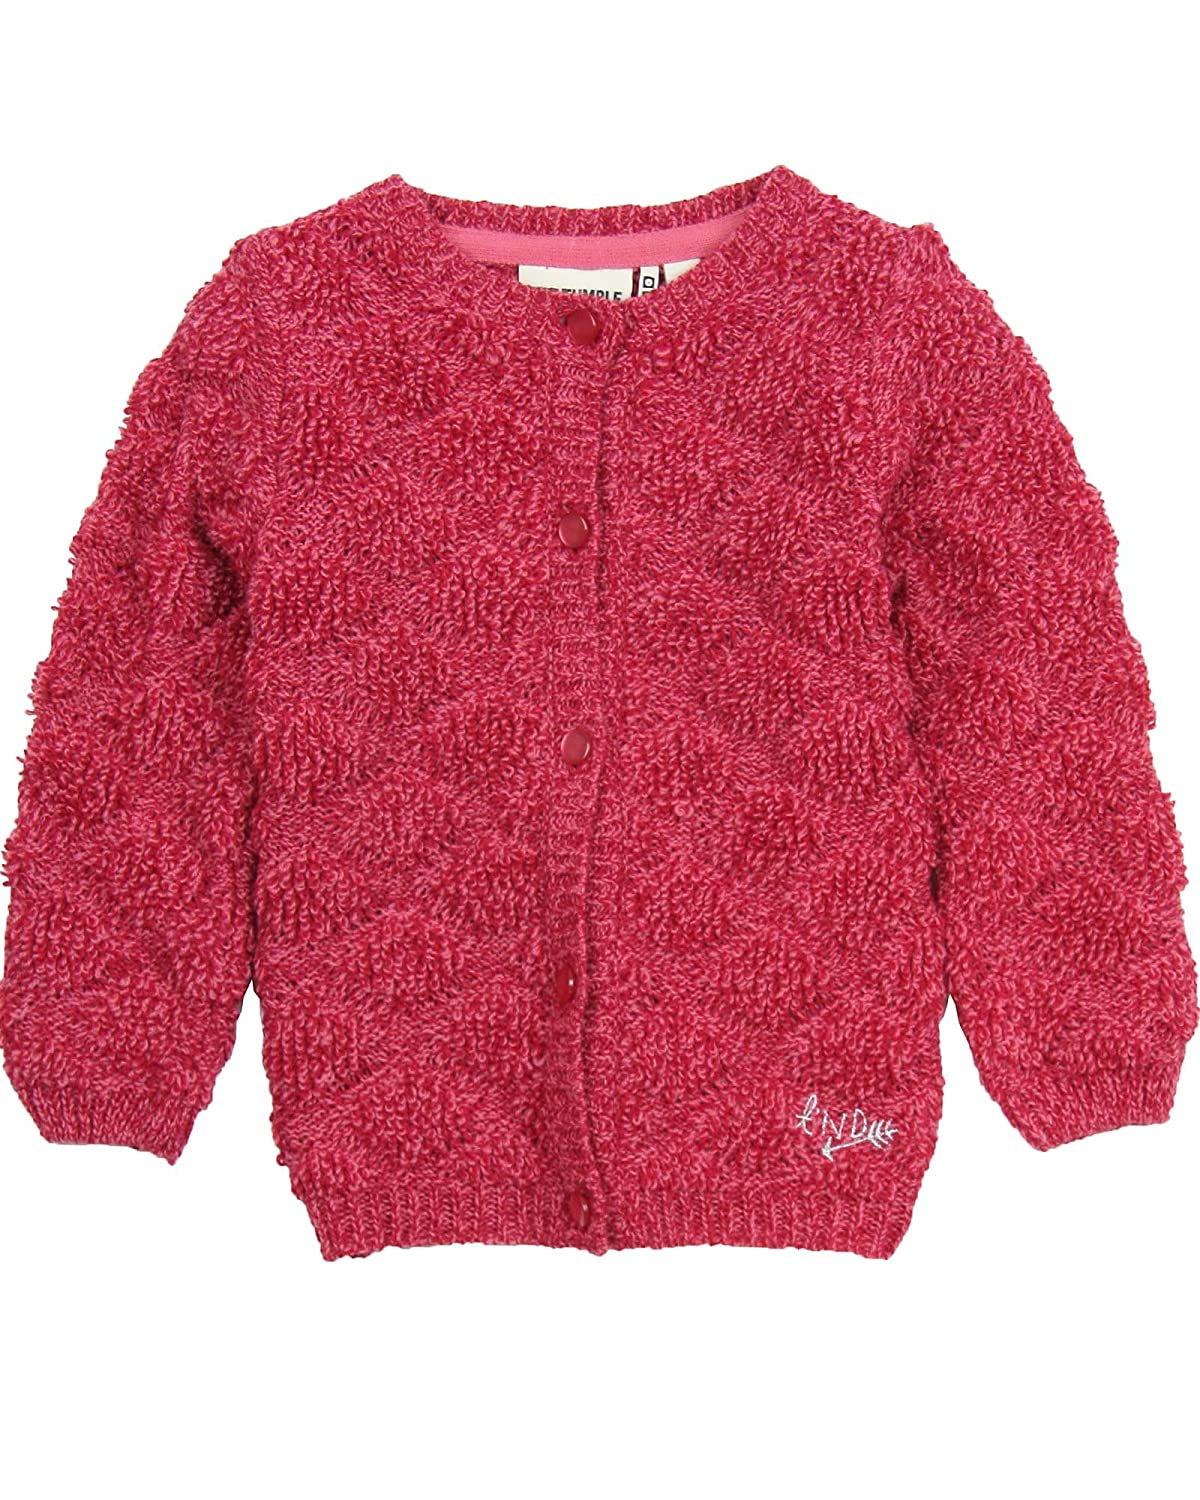 2 Sizes 18M Tumble n Dry Baby Girls Cardigan Fileine